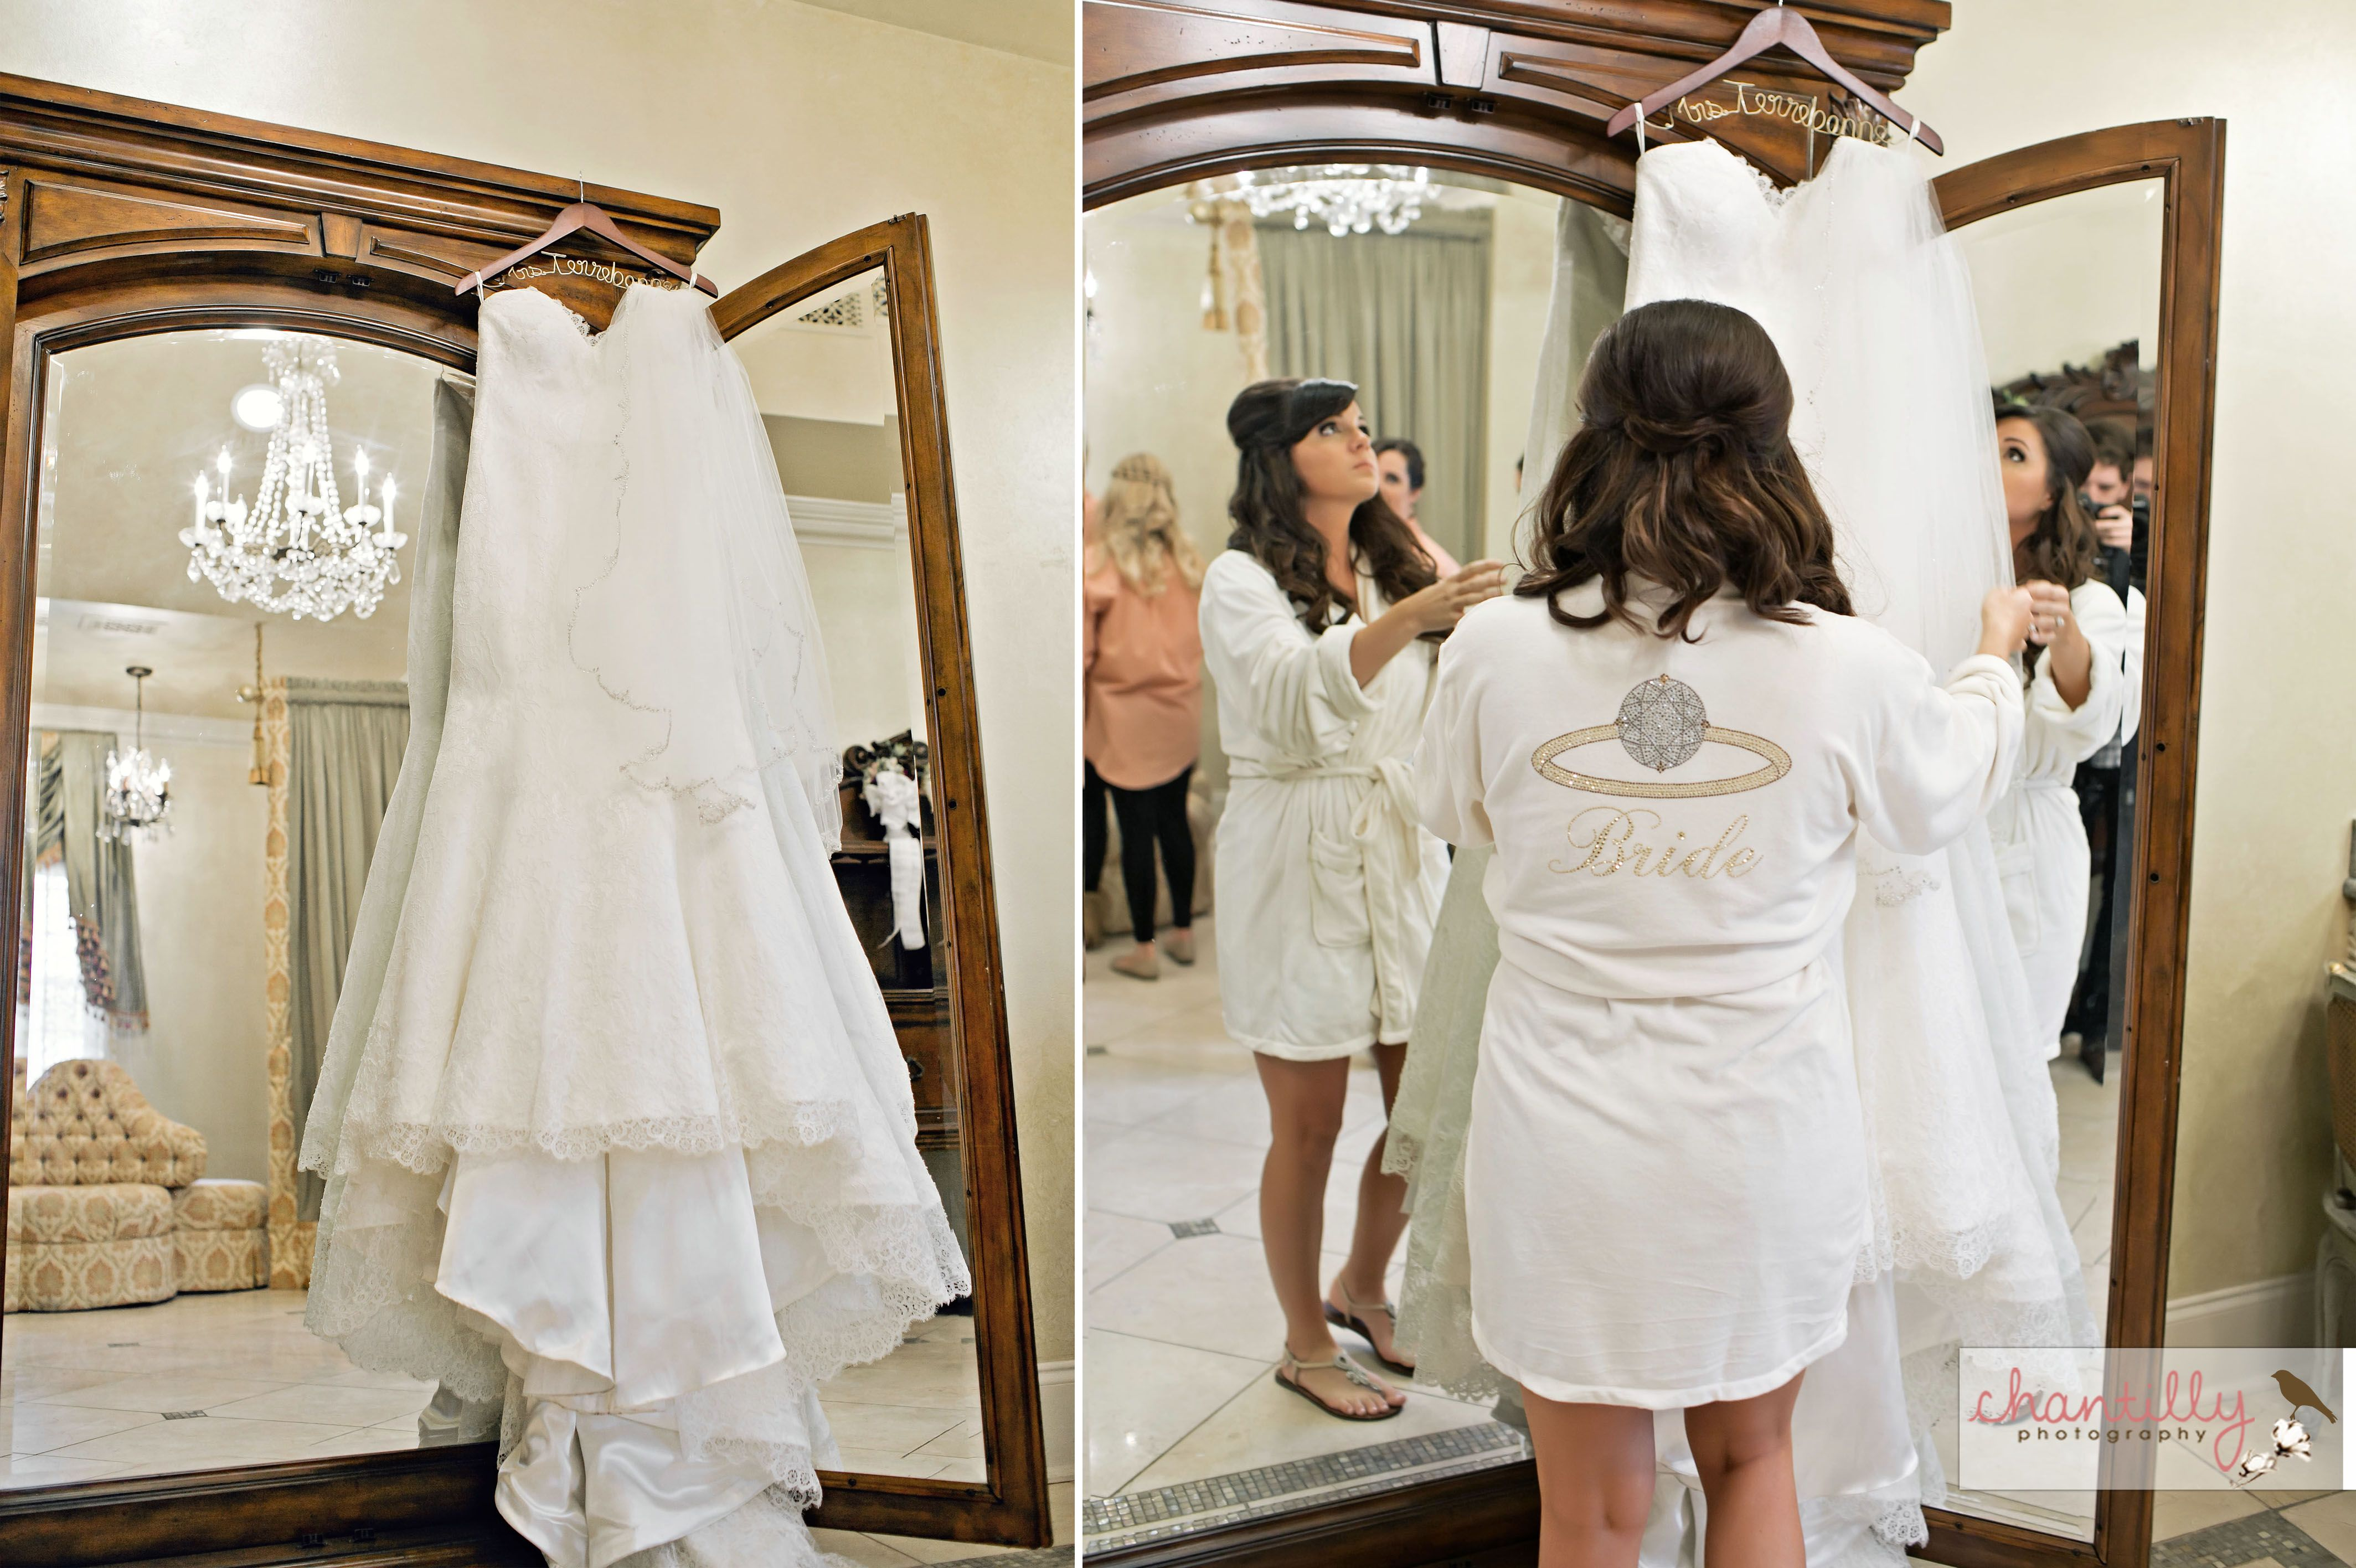 The Bride Getting Ready In Our Bridal Dressing Room Nottoway Plantation